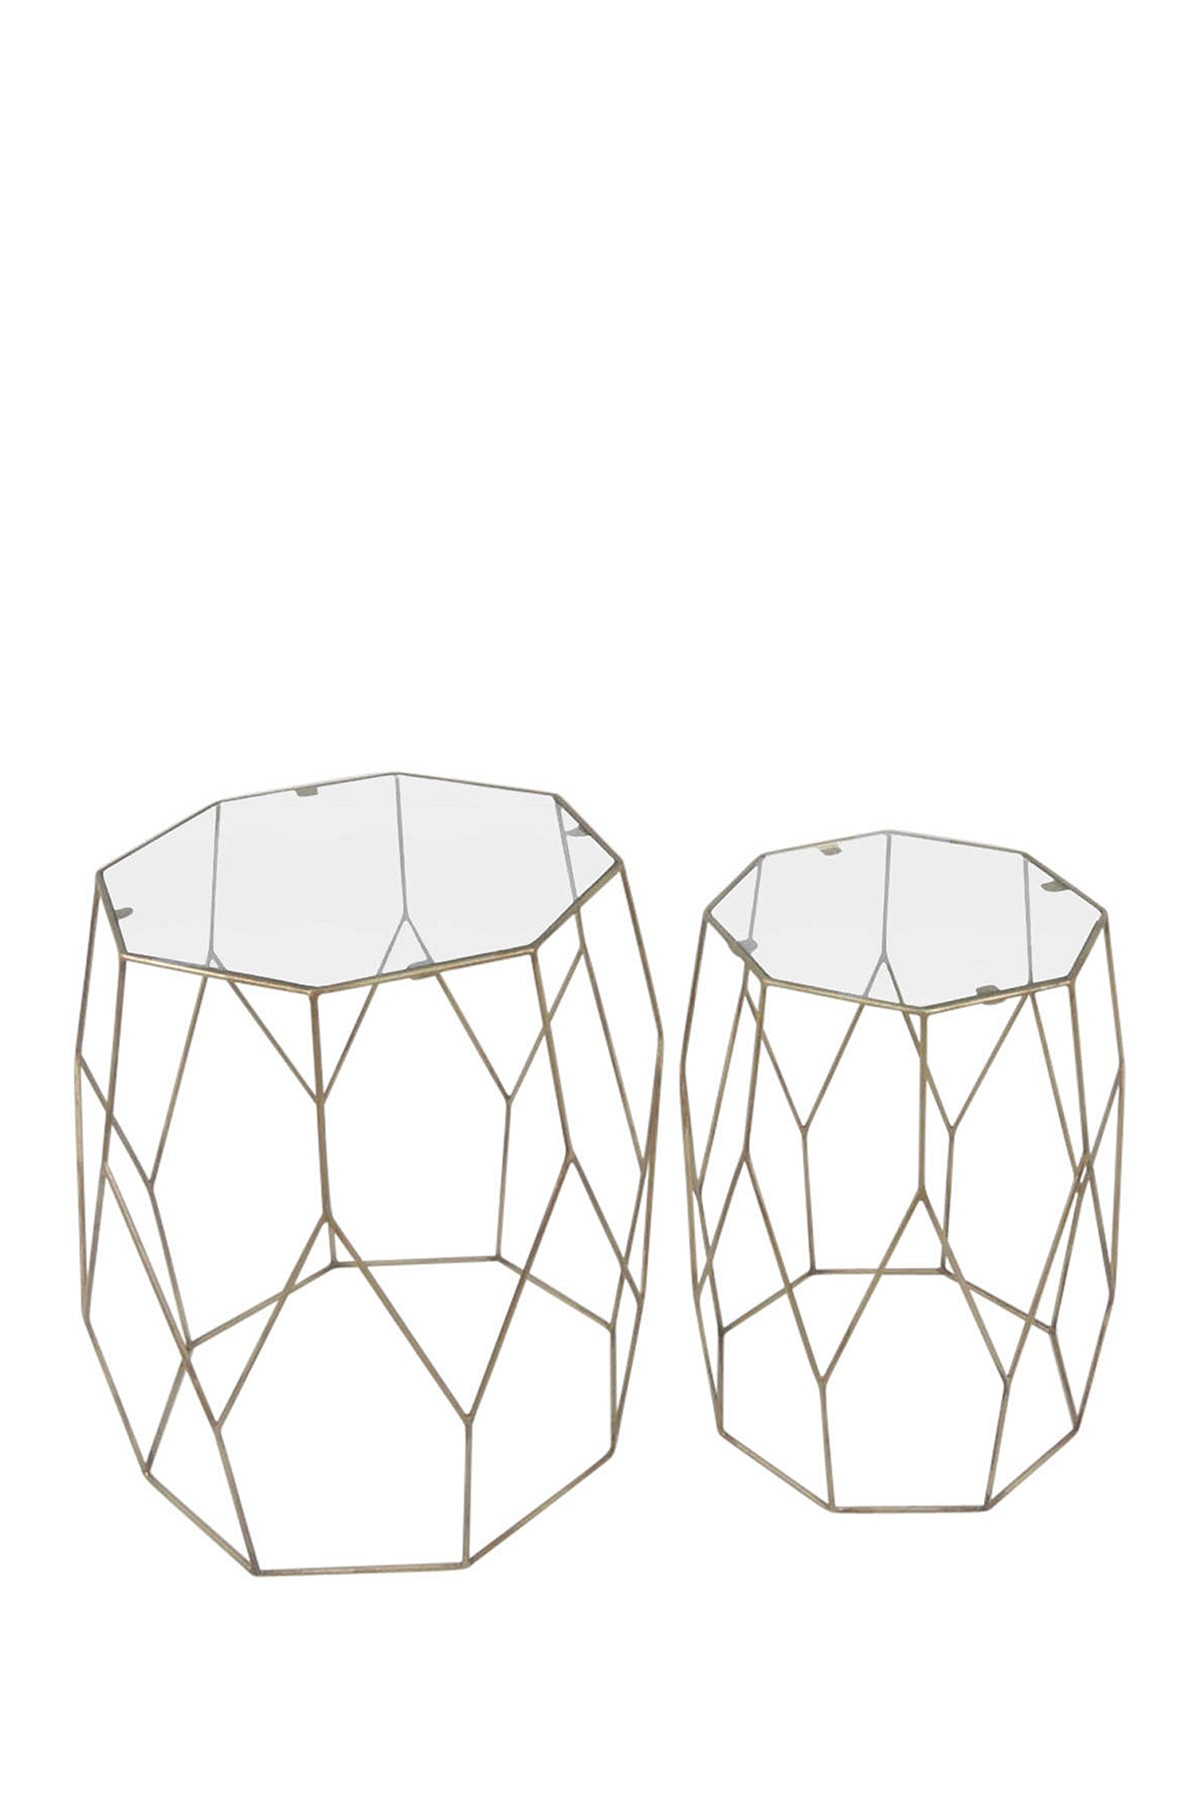 sagebrook home gold accent table set nordstrom rack short coffee small folding ikea and end tables lamps for bedroom lucite brass farm chairs piece kitchen with leaf plexiglass